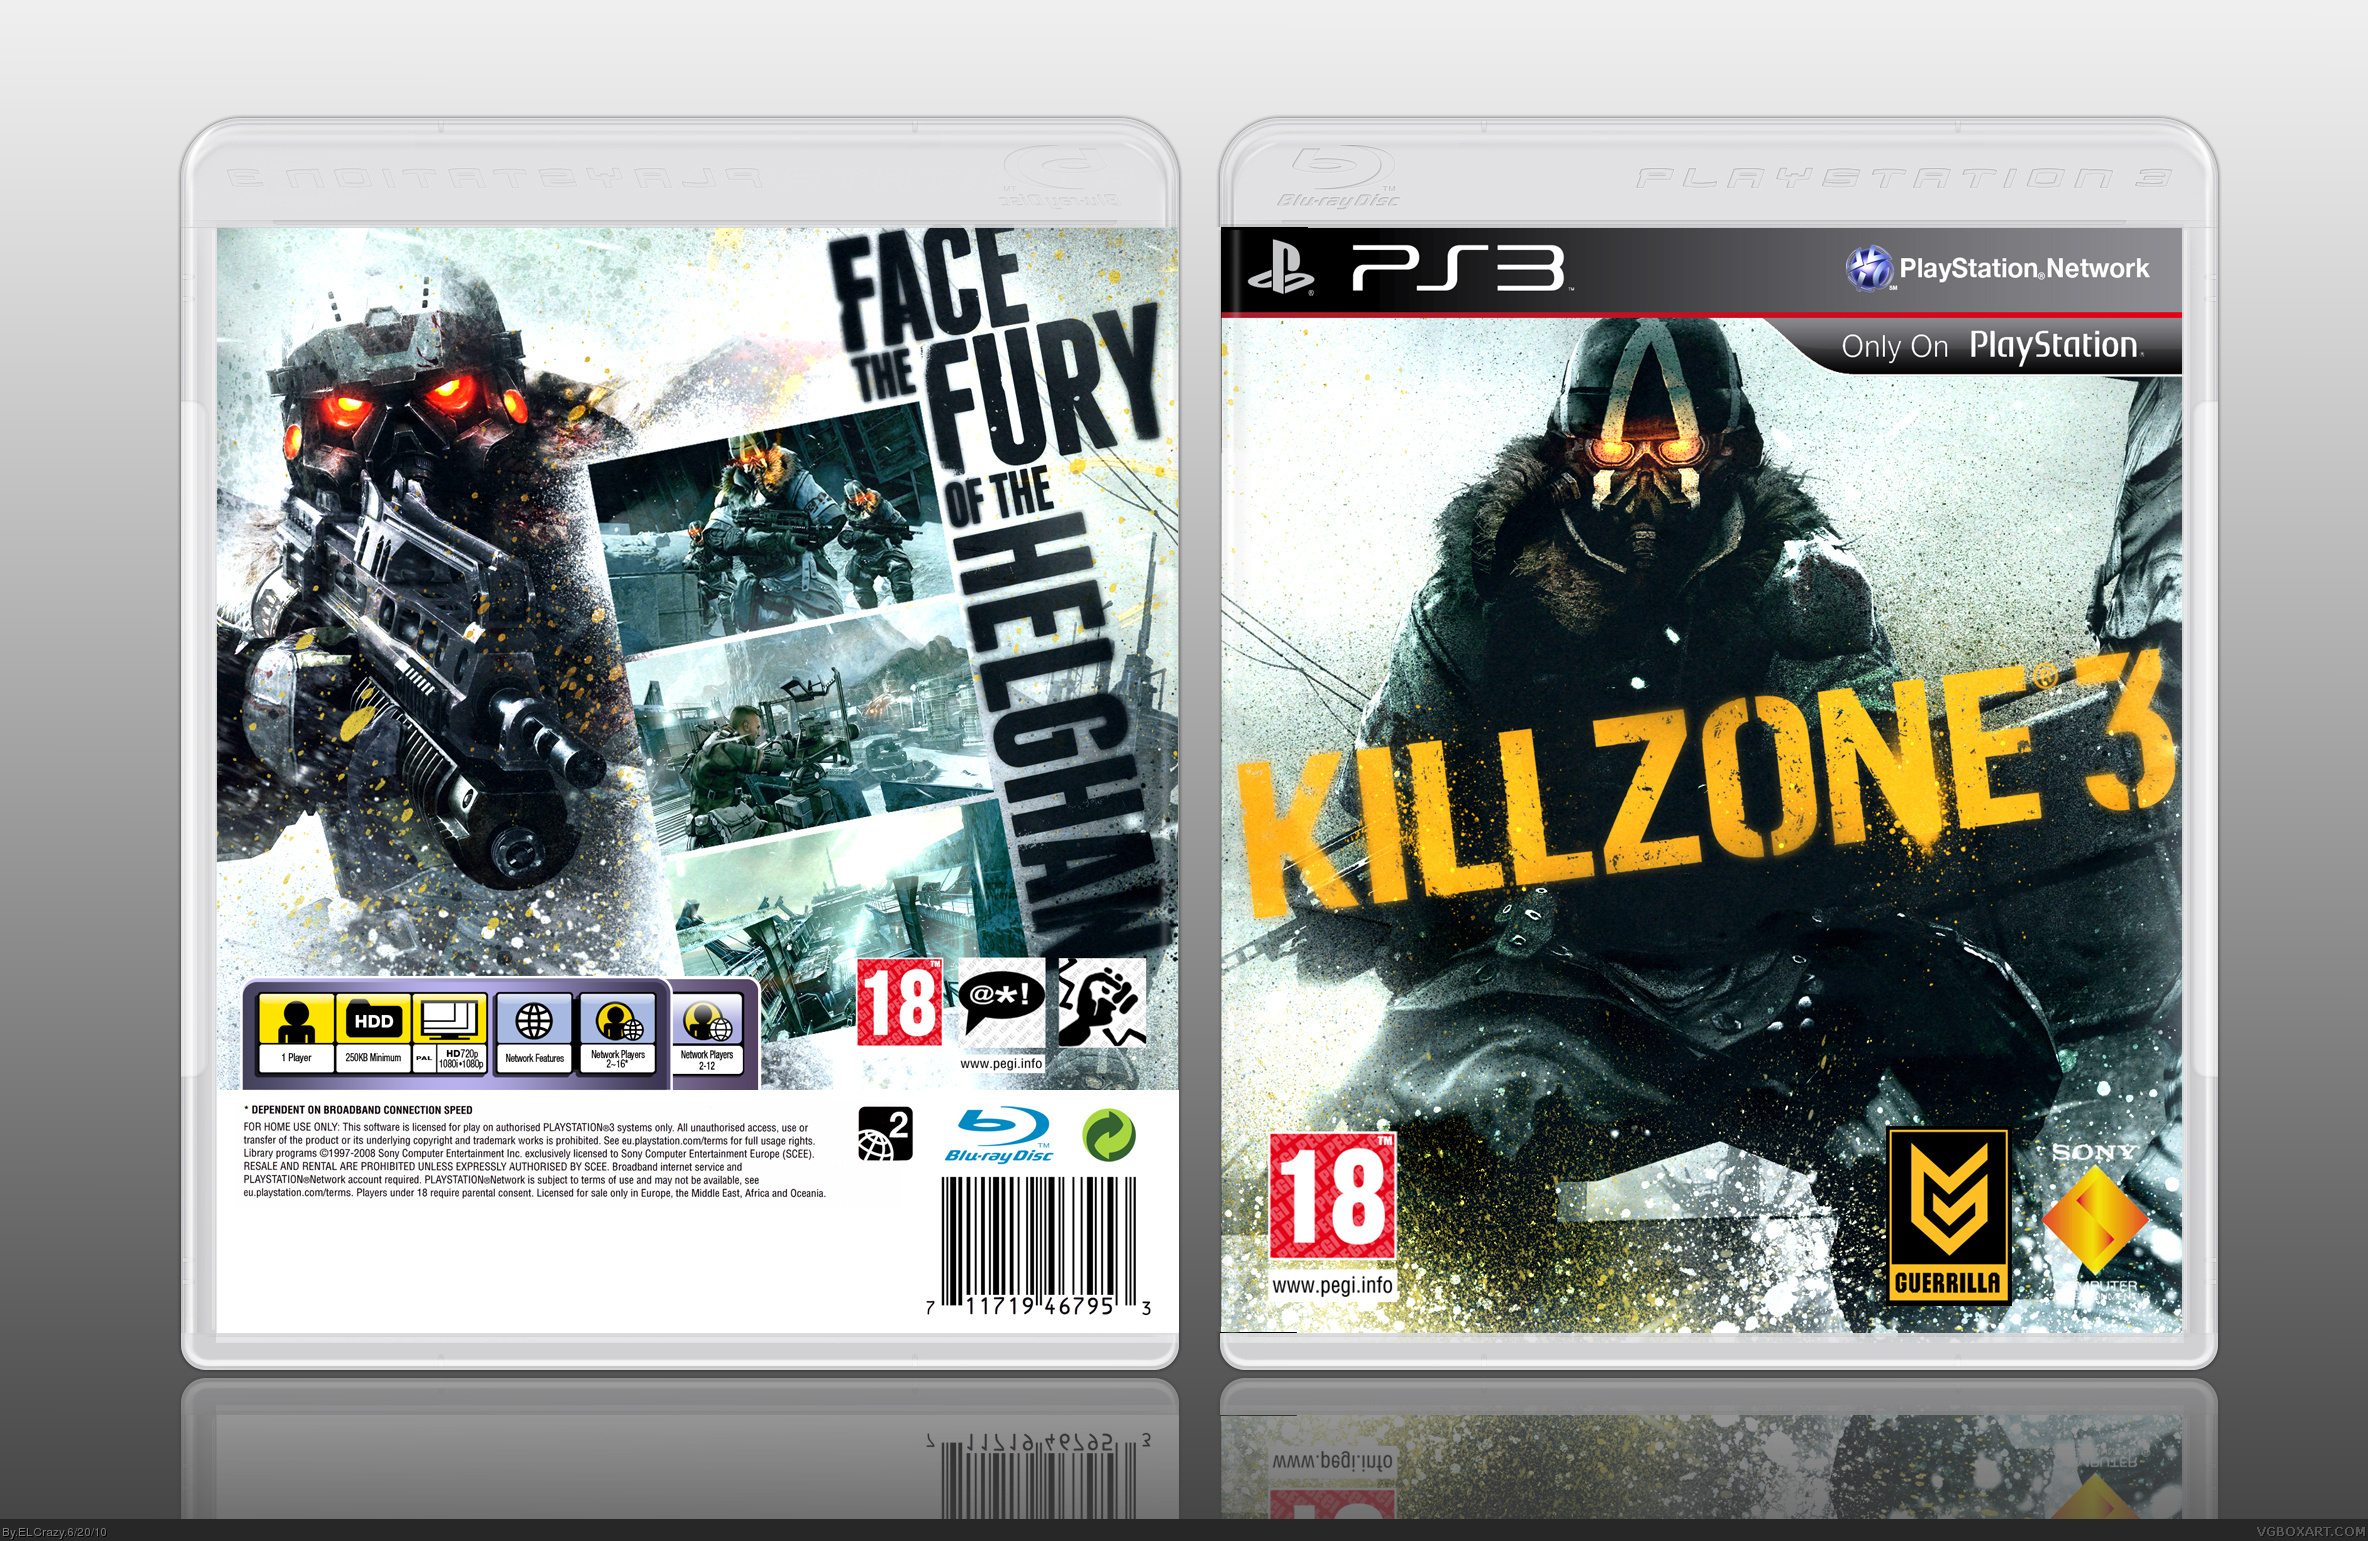 Killzone 3 box cover